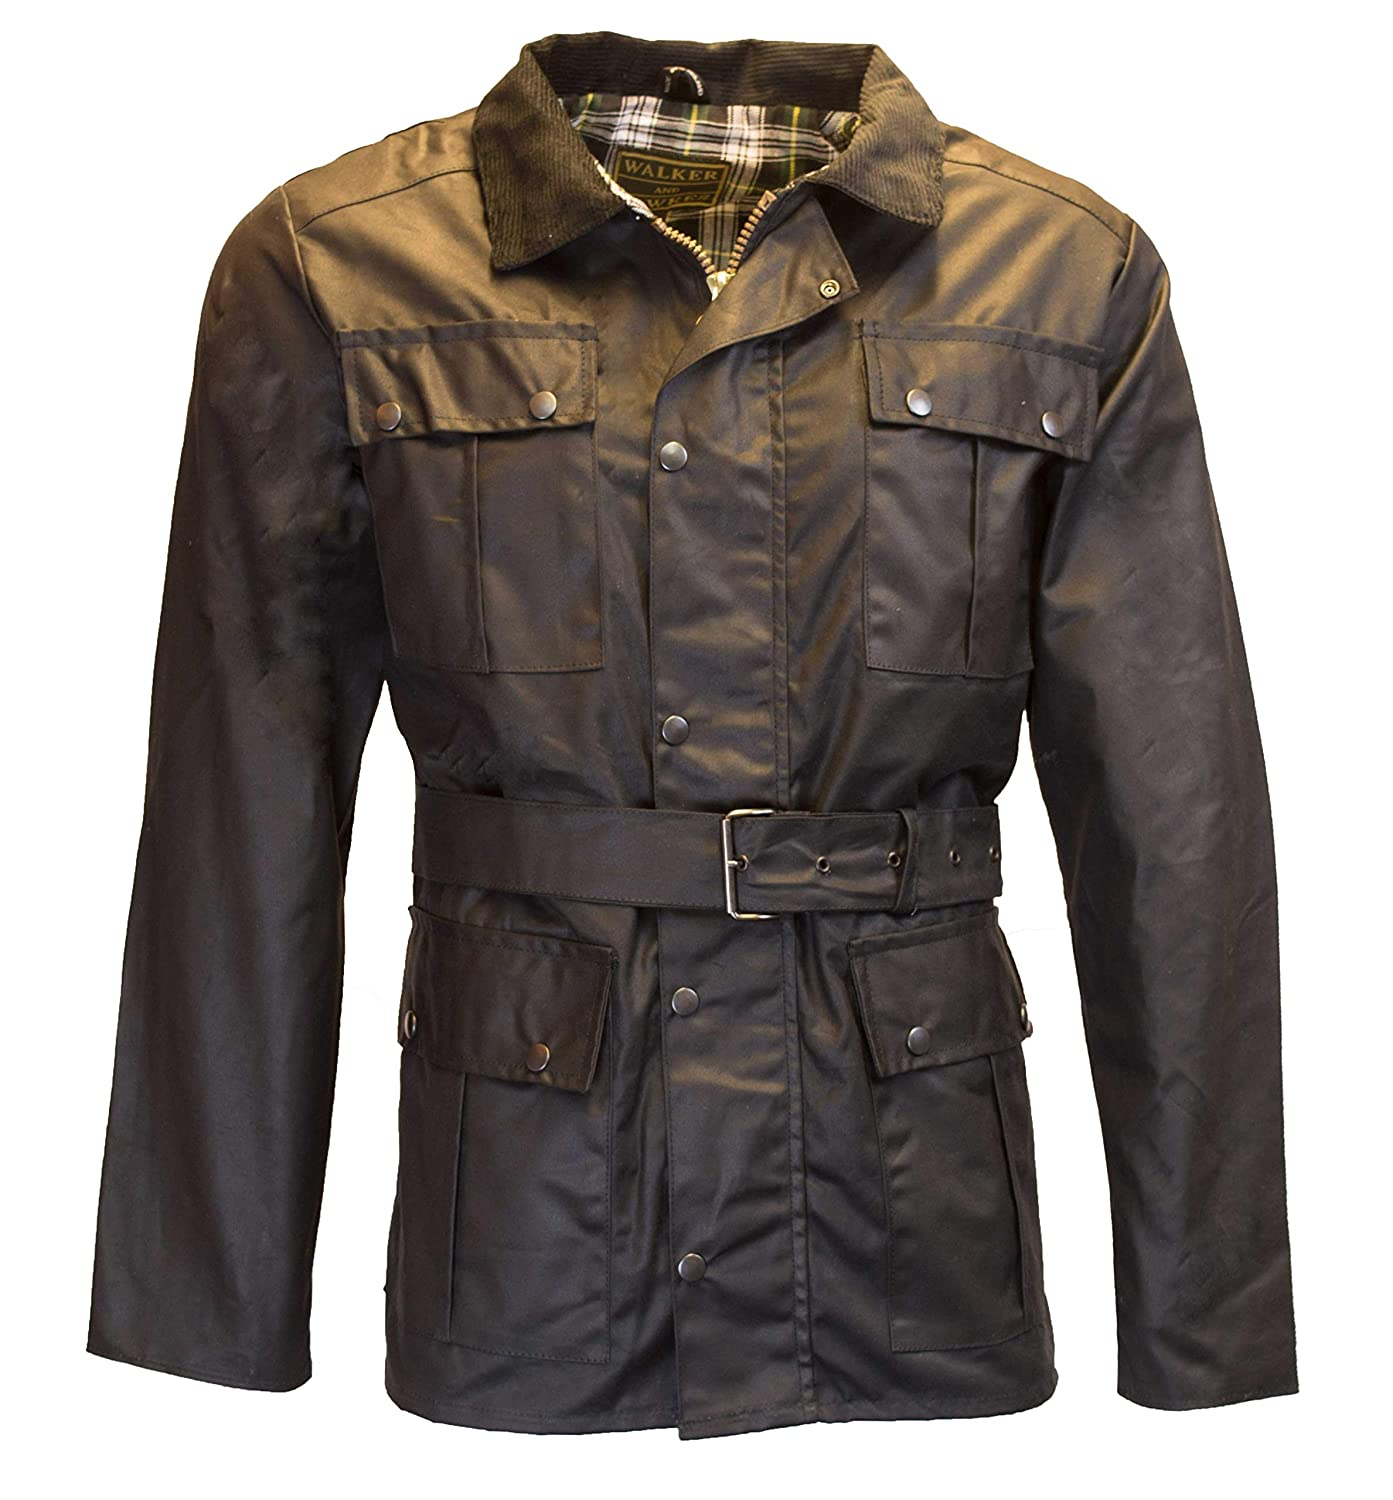 Men's Vintage Style Coats and Jackets Walker and Hawkes Mens Belted Wax 4 Pocket Motorcycle Waterproof Jacket $101.92 AT vintagedancer.com